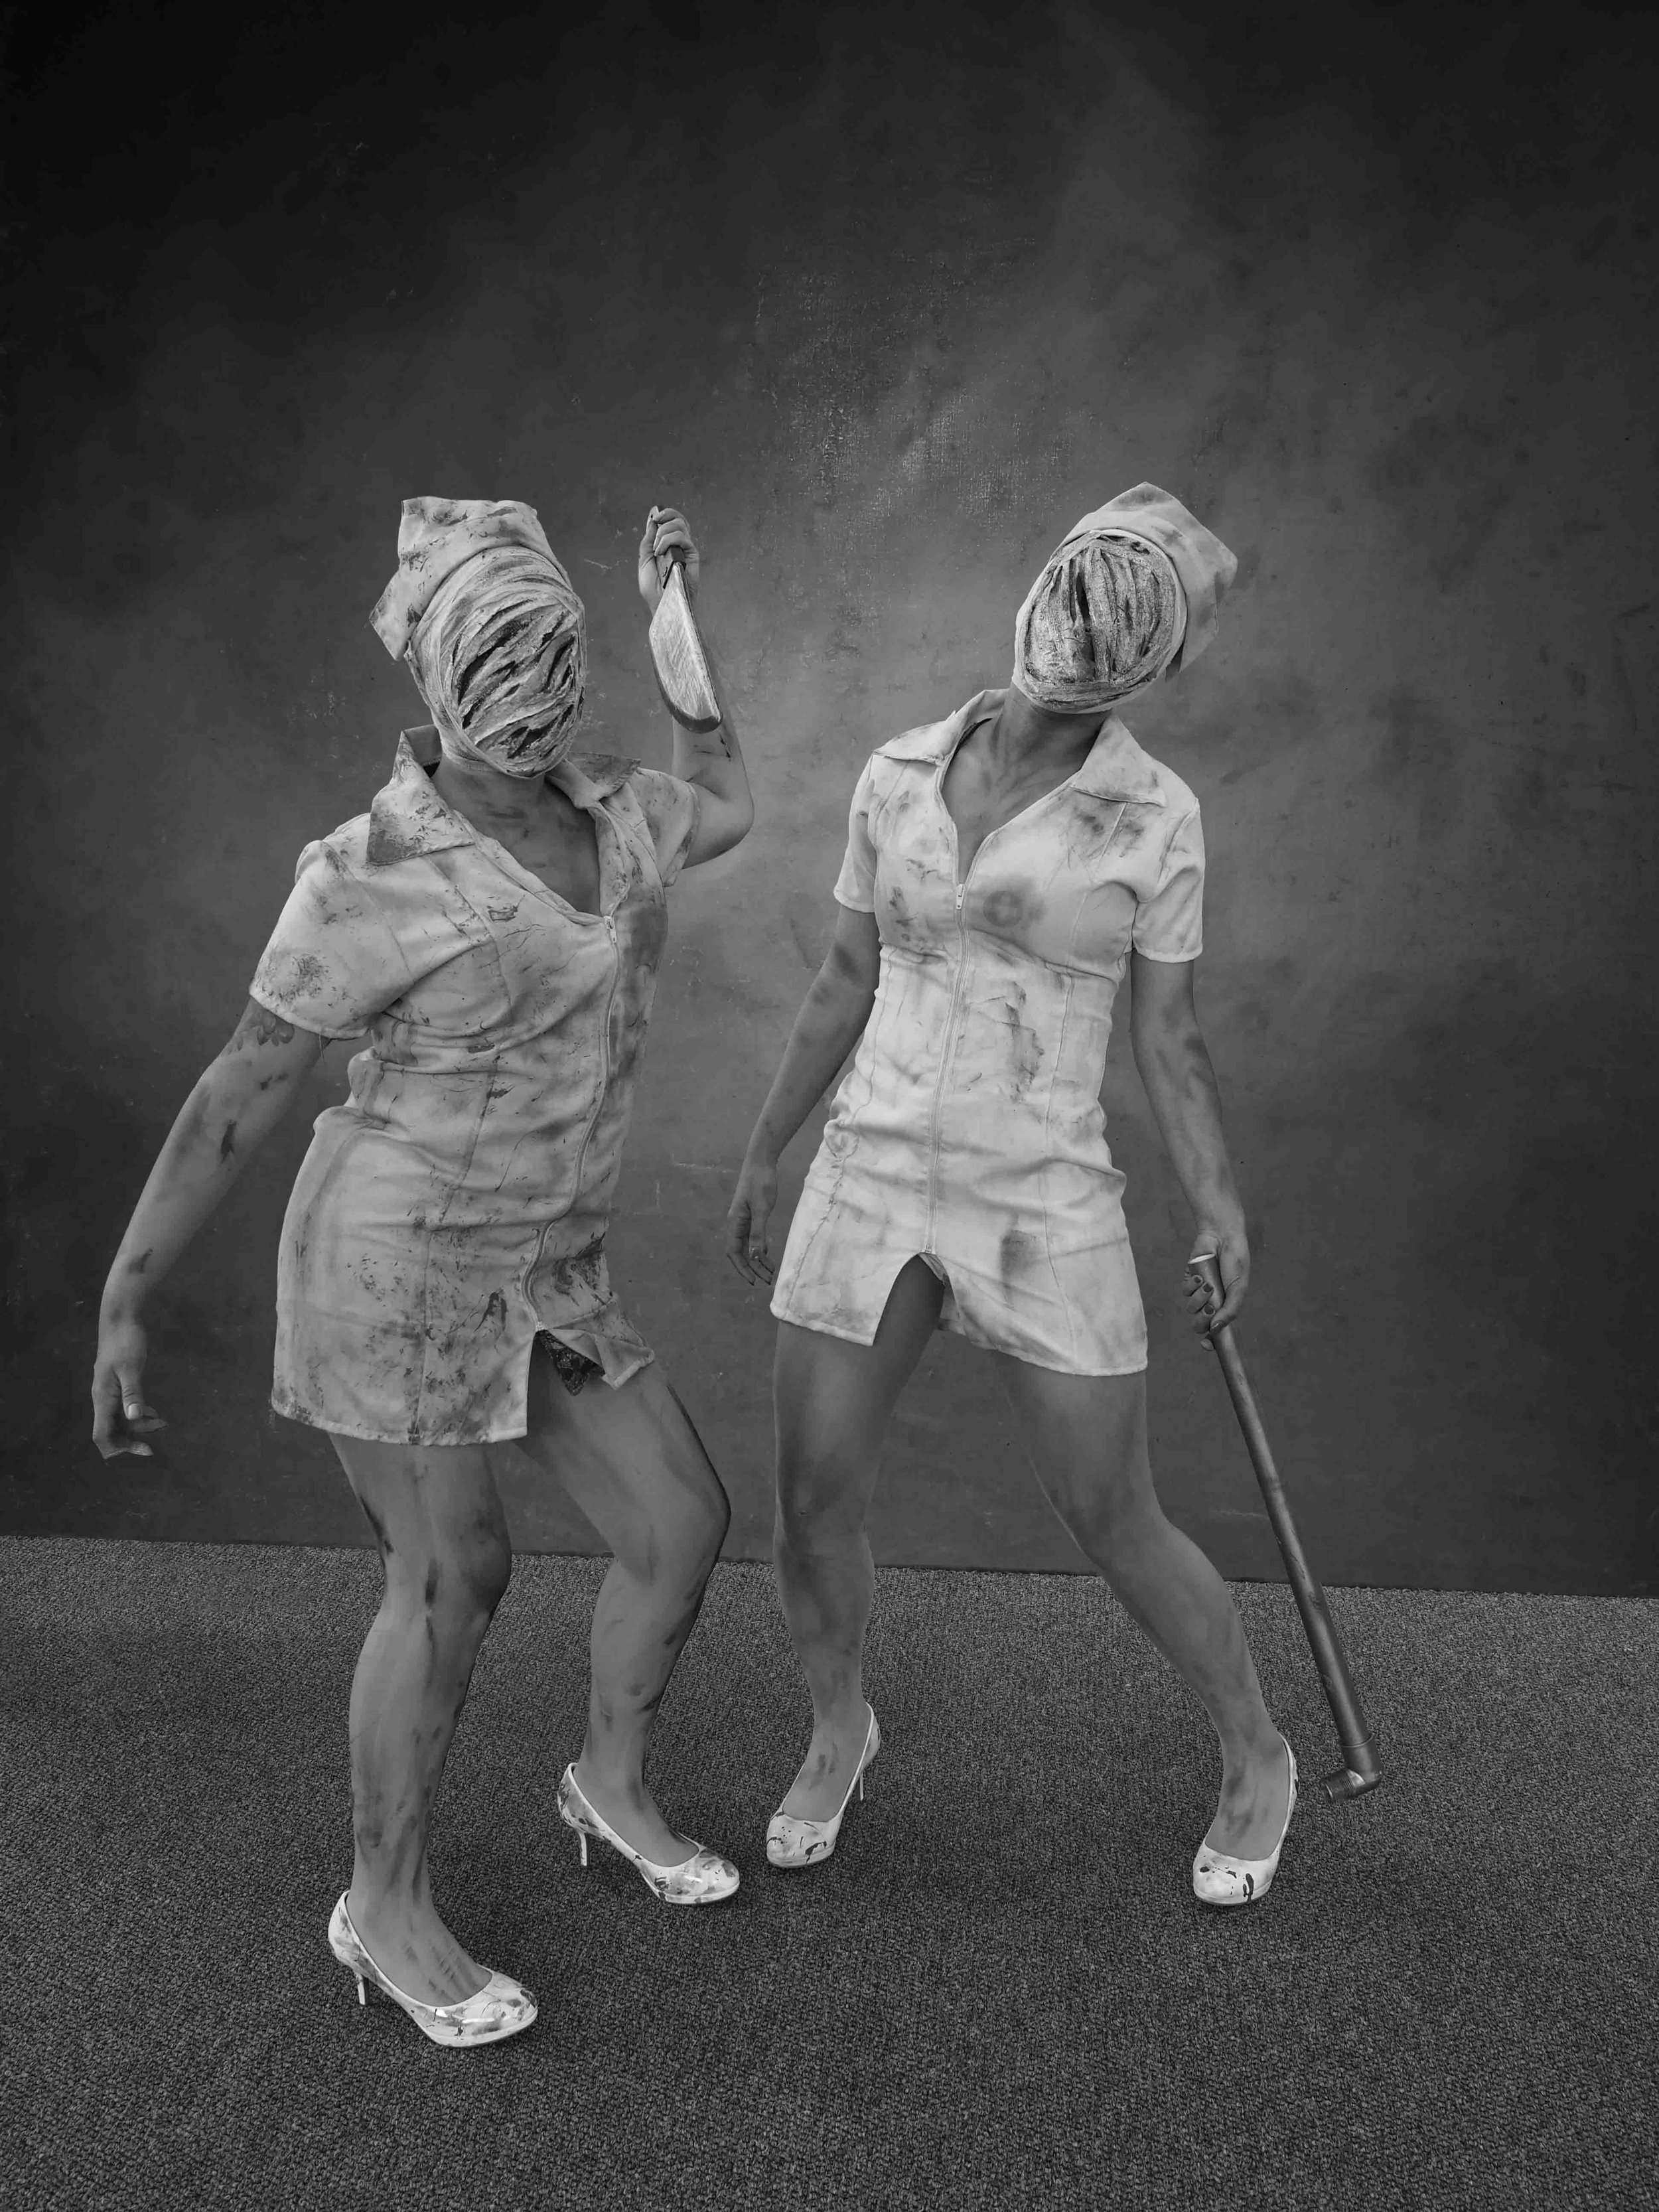 Silent Hill Nurses - Inspired by the film Silent Hill Film & Video Games